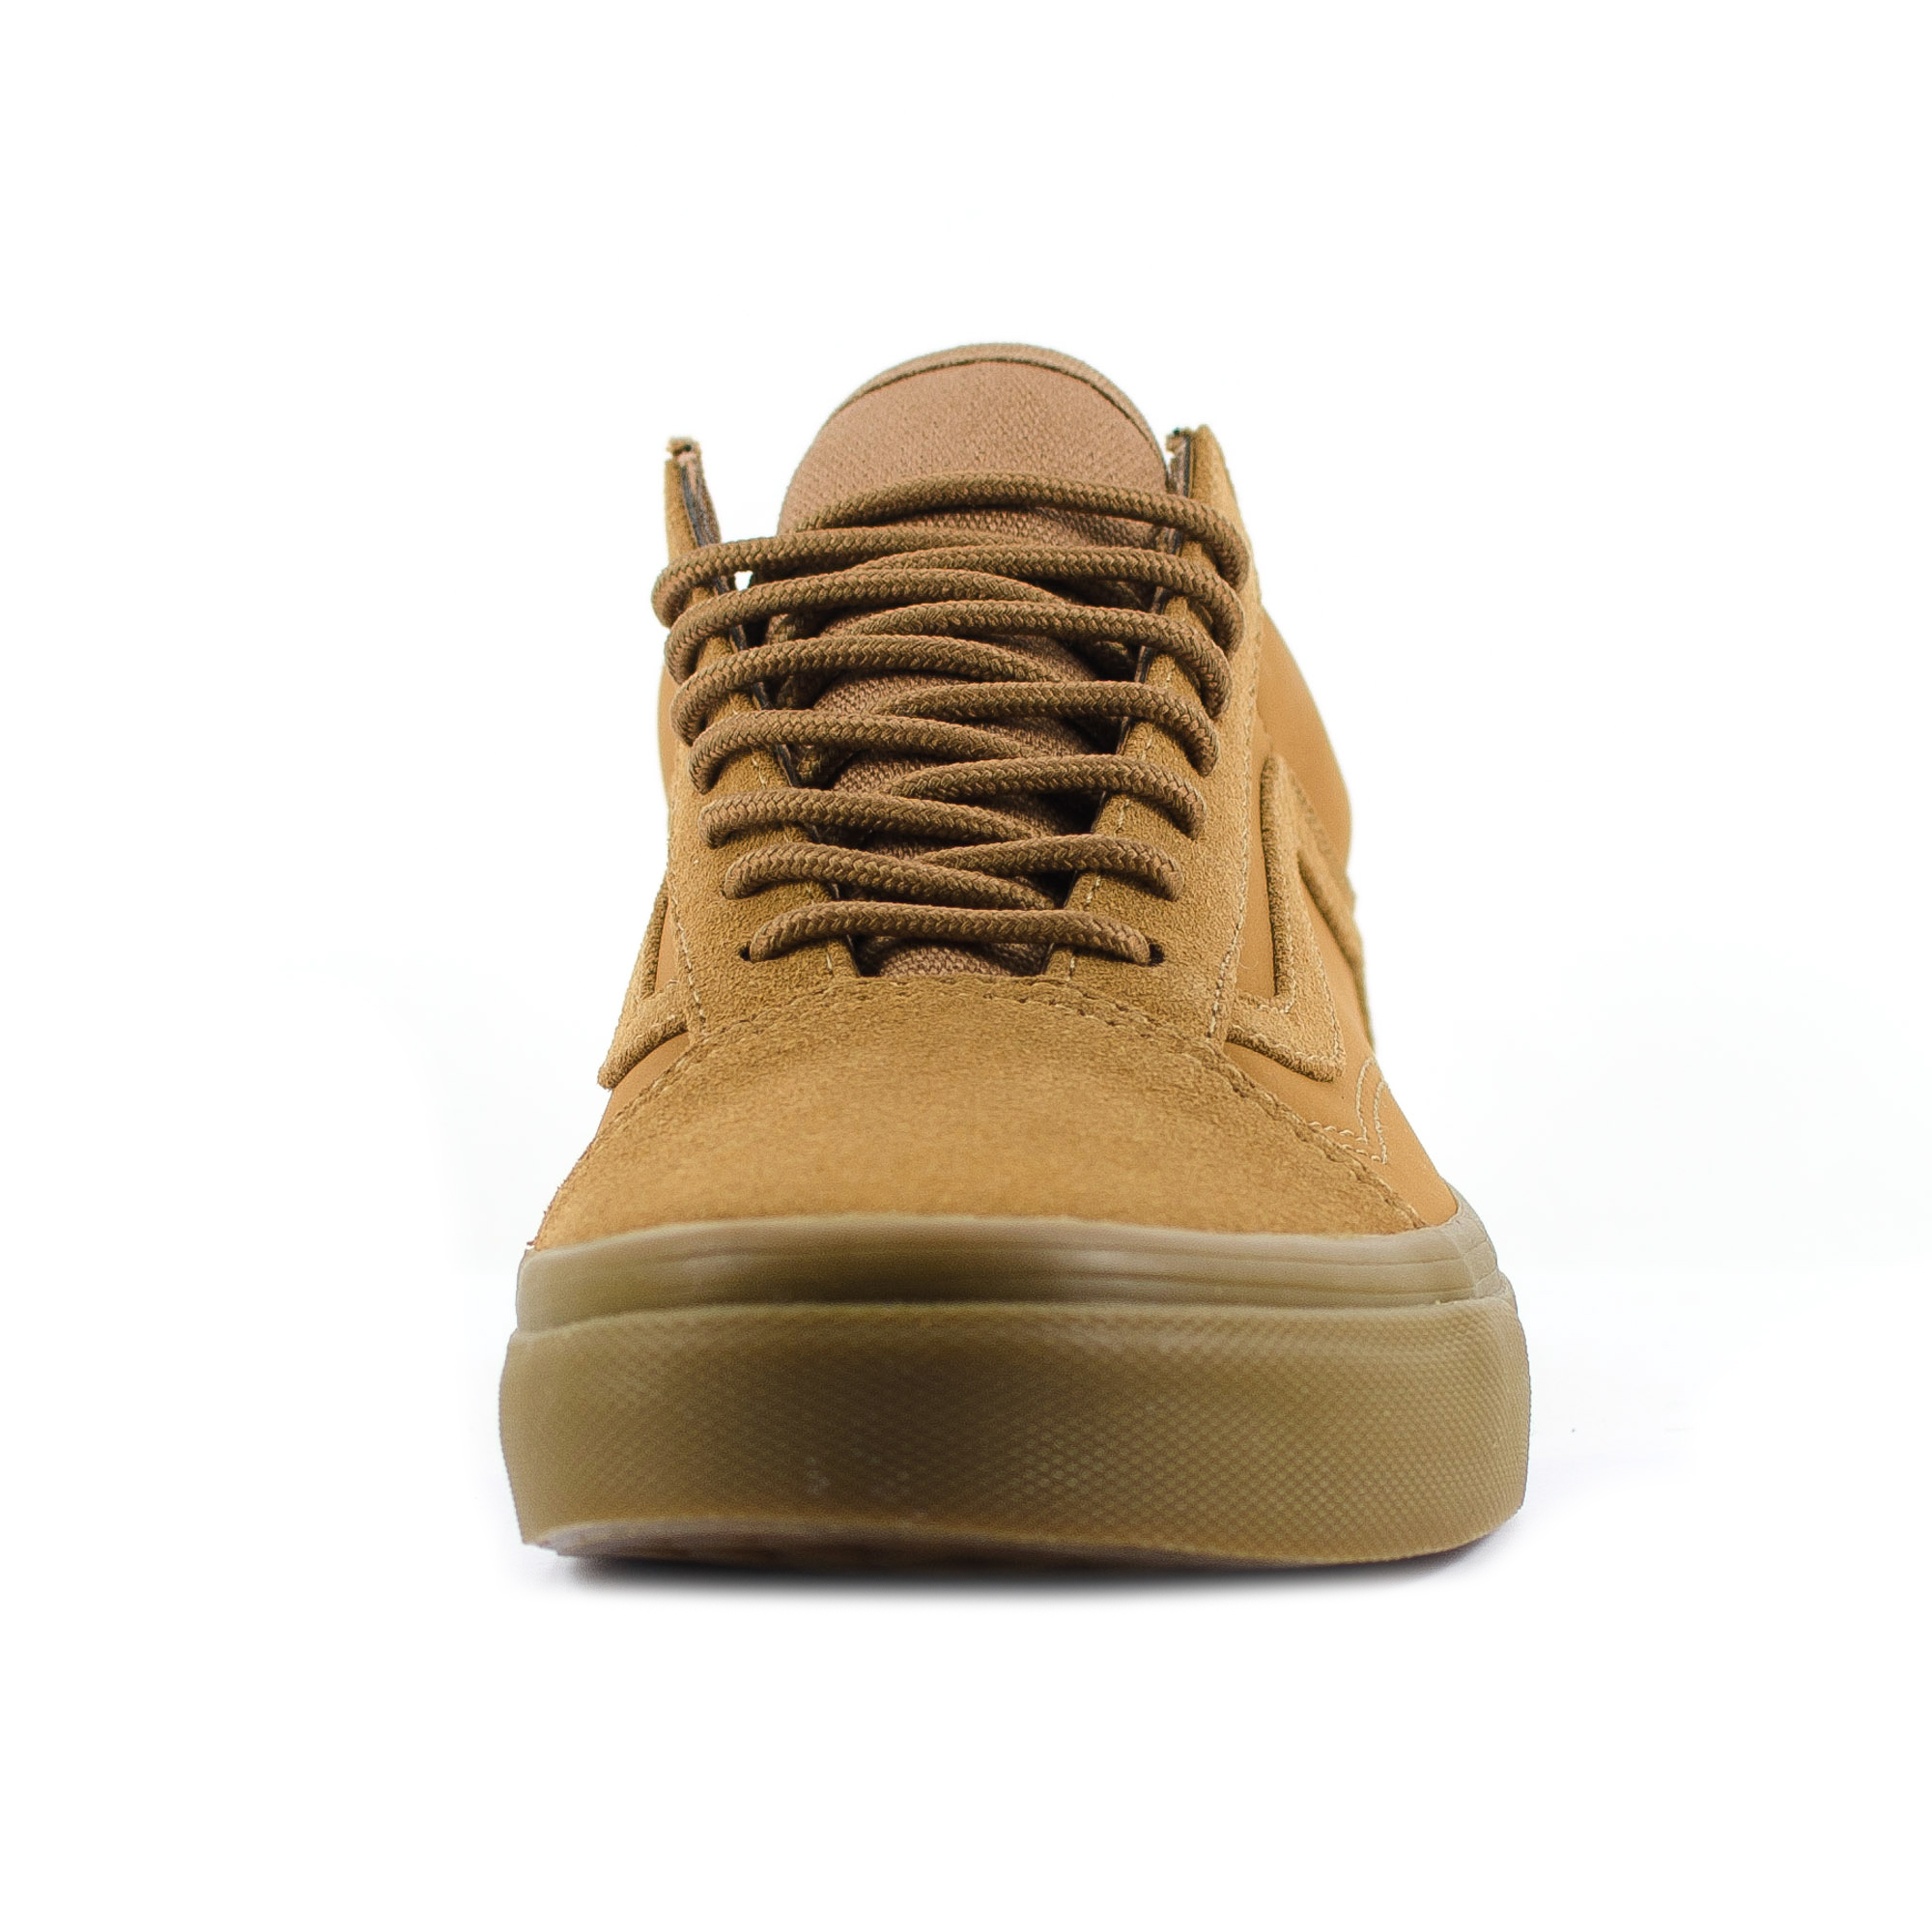 44dc4439ecd vans old skool tan > OFF77% Discounts